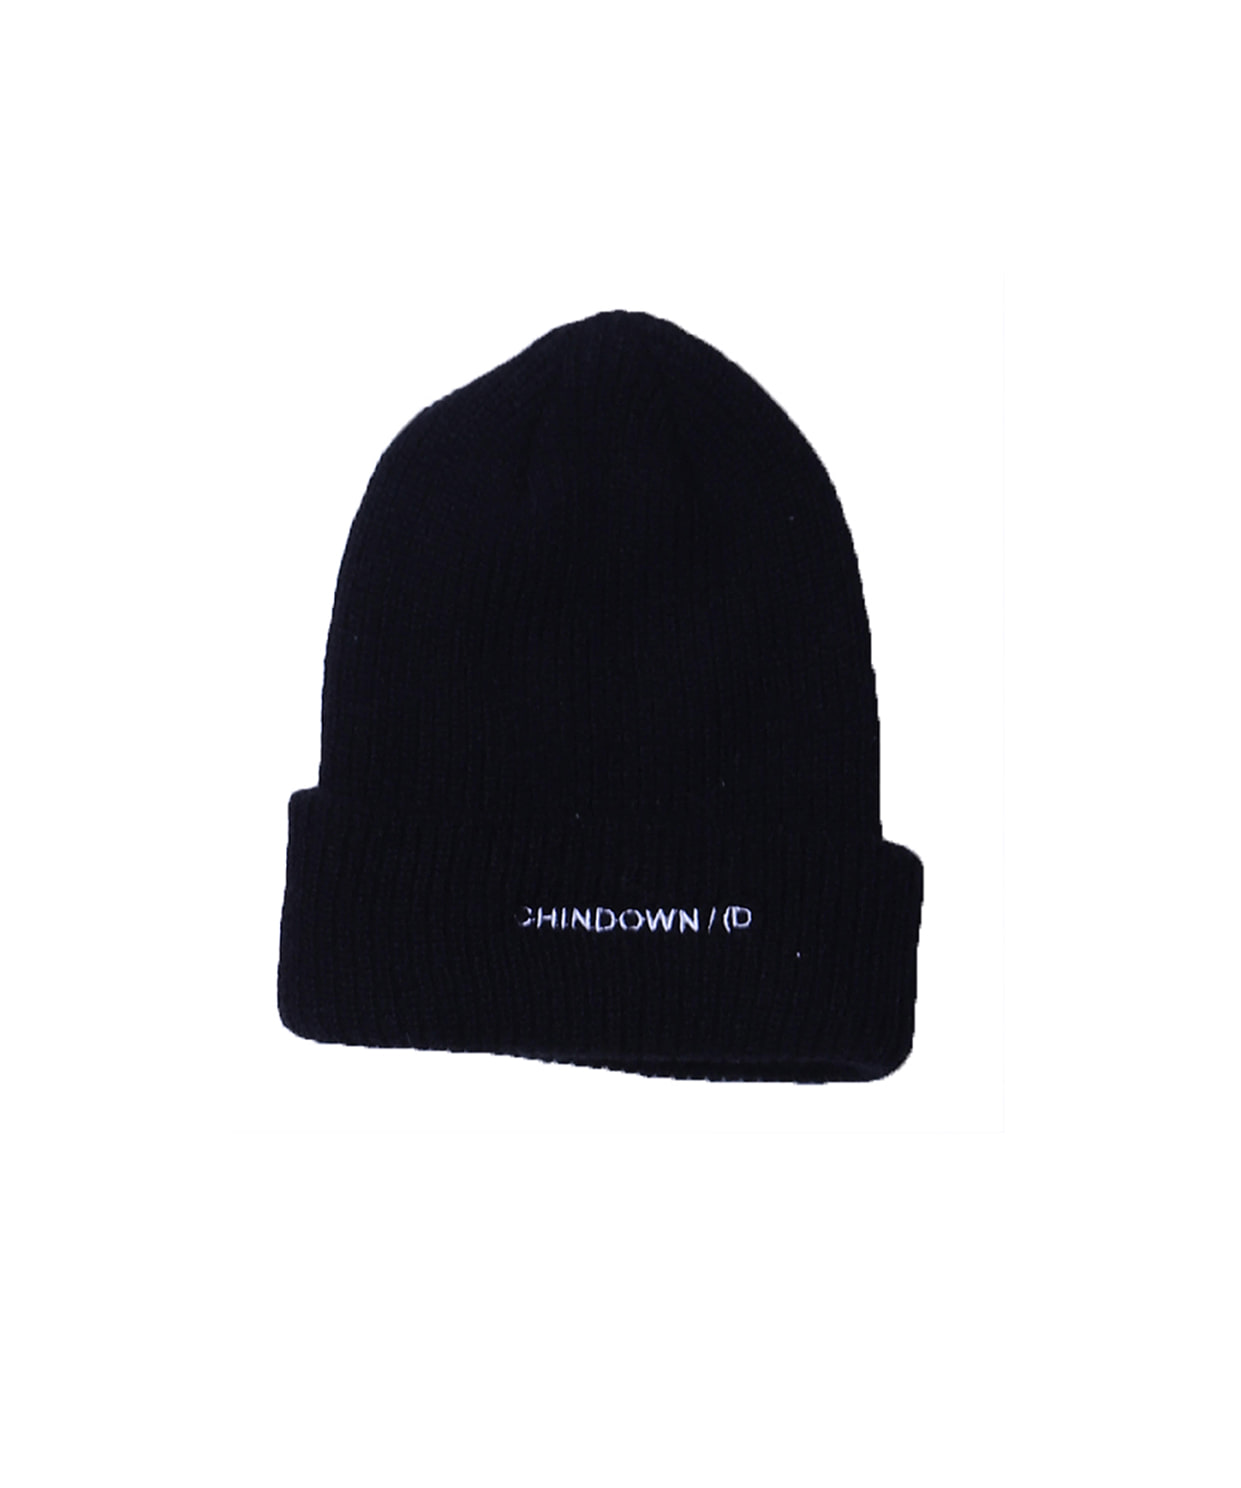 BASIC BEANIE CHINDOWN EMBROIDERED (BLACK)